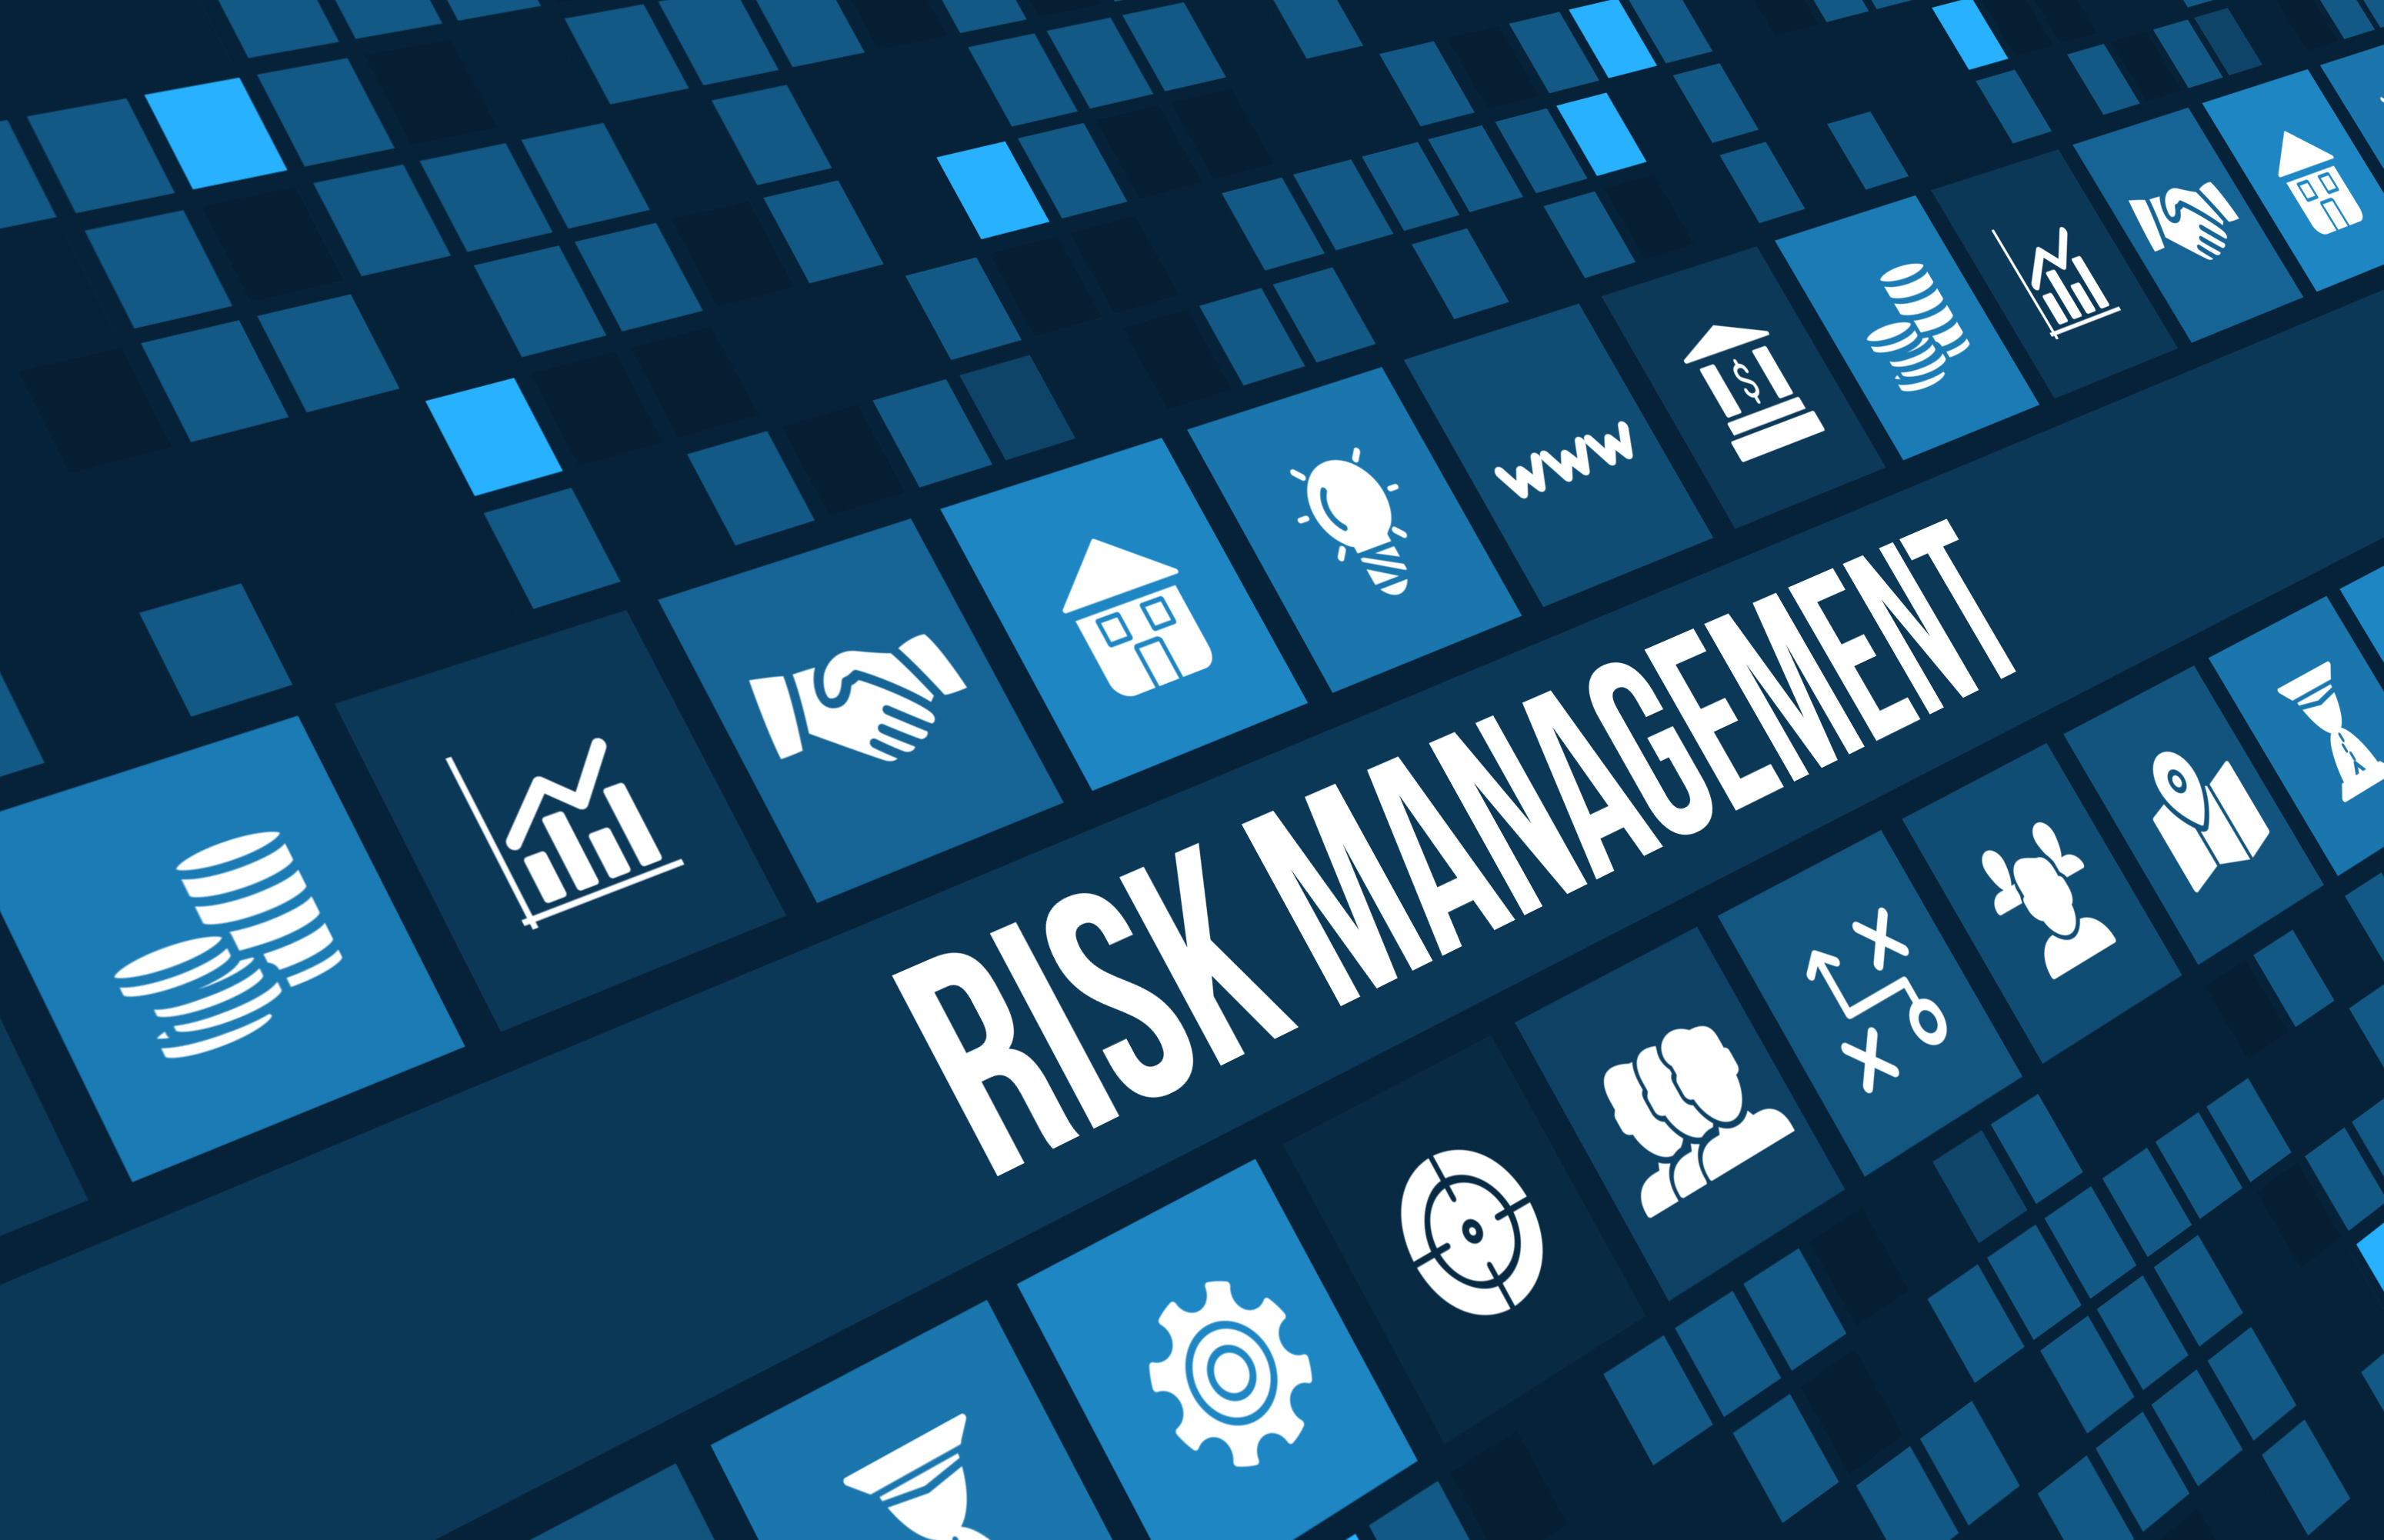 Risk Management Essay: Some Useful Advice for Students